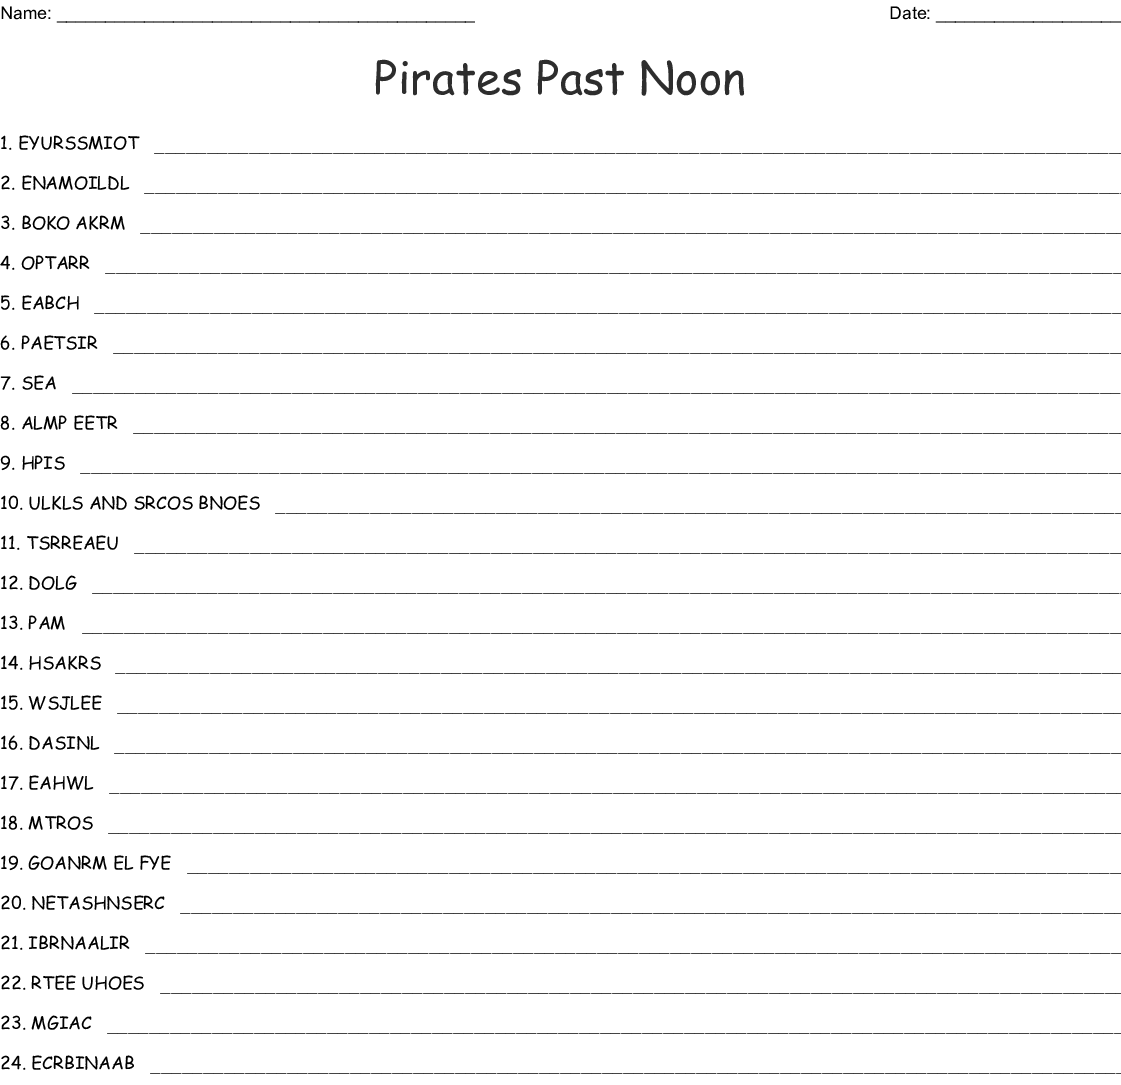 Pirates Past Noon Word Search